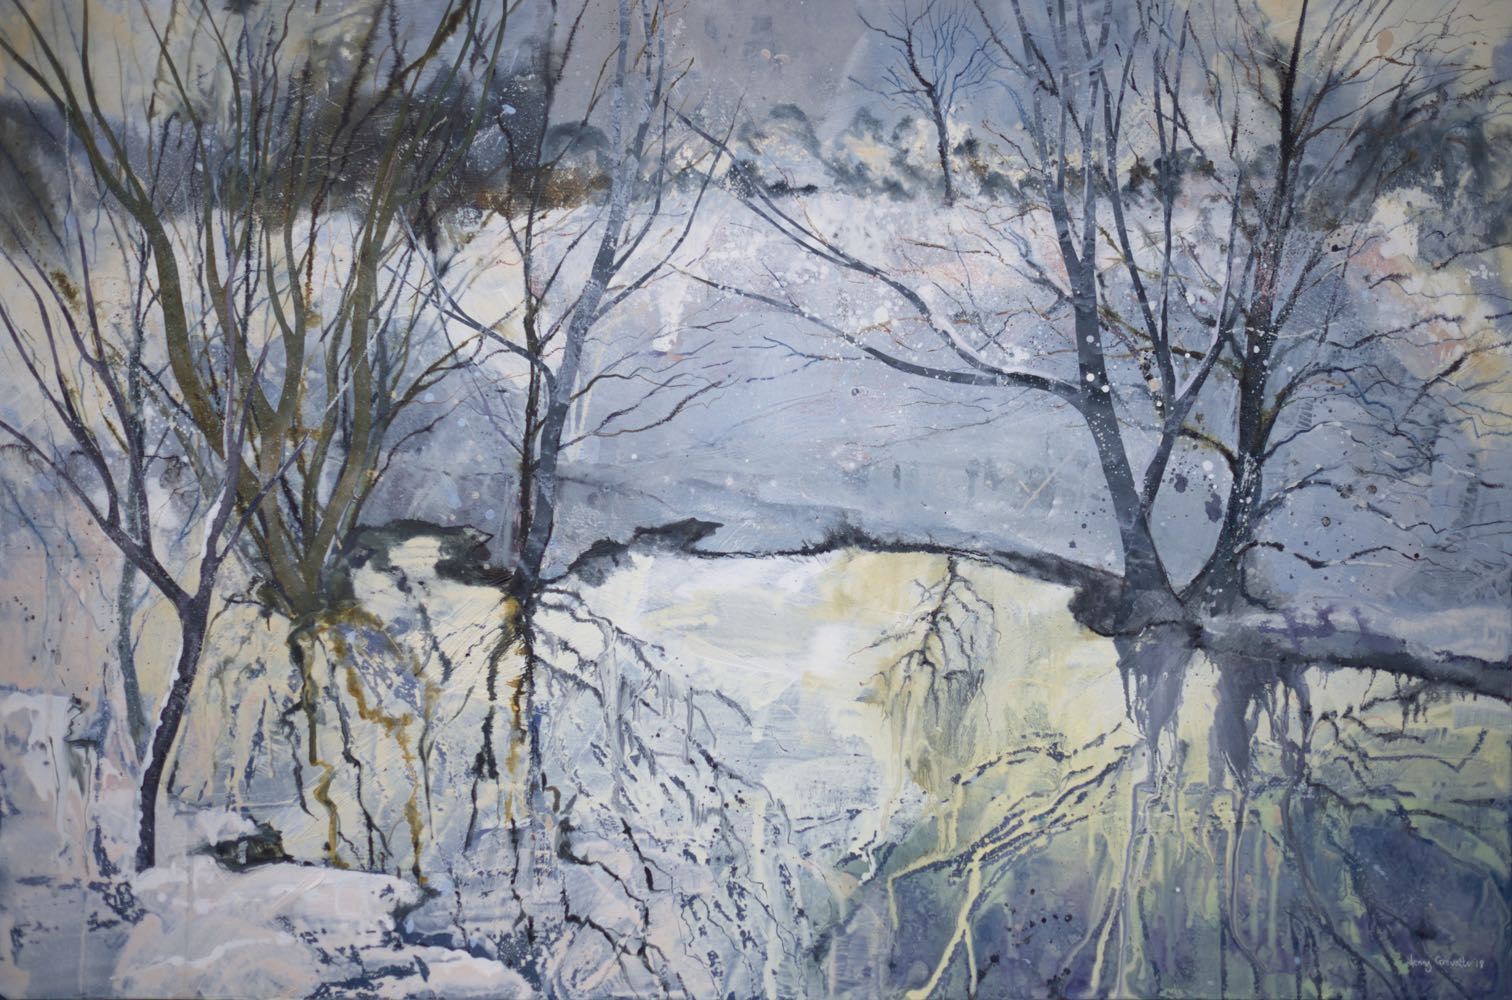 Snowy reflections by the brook